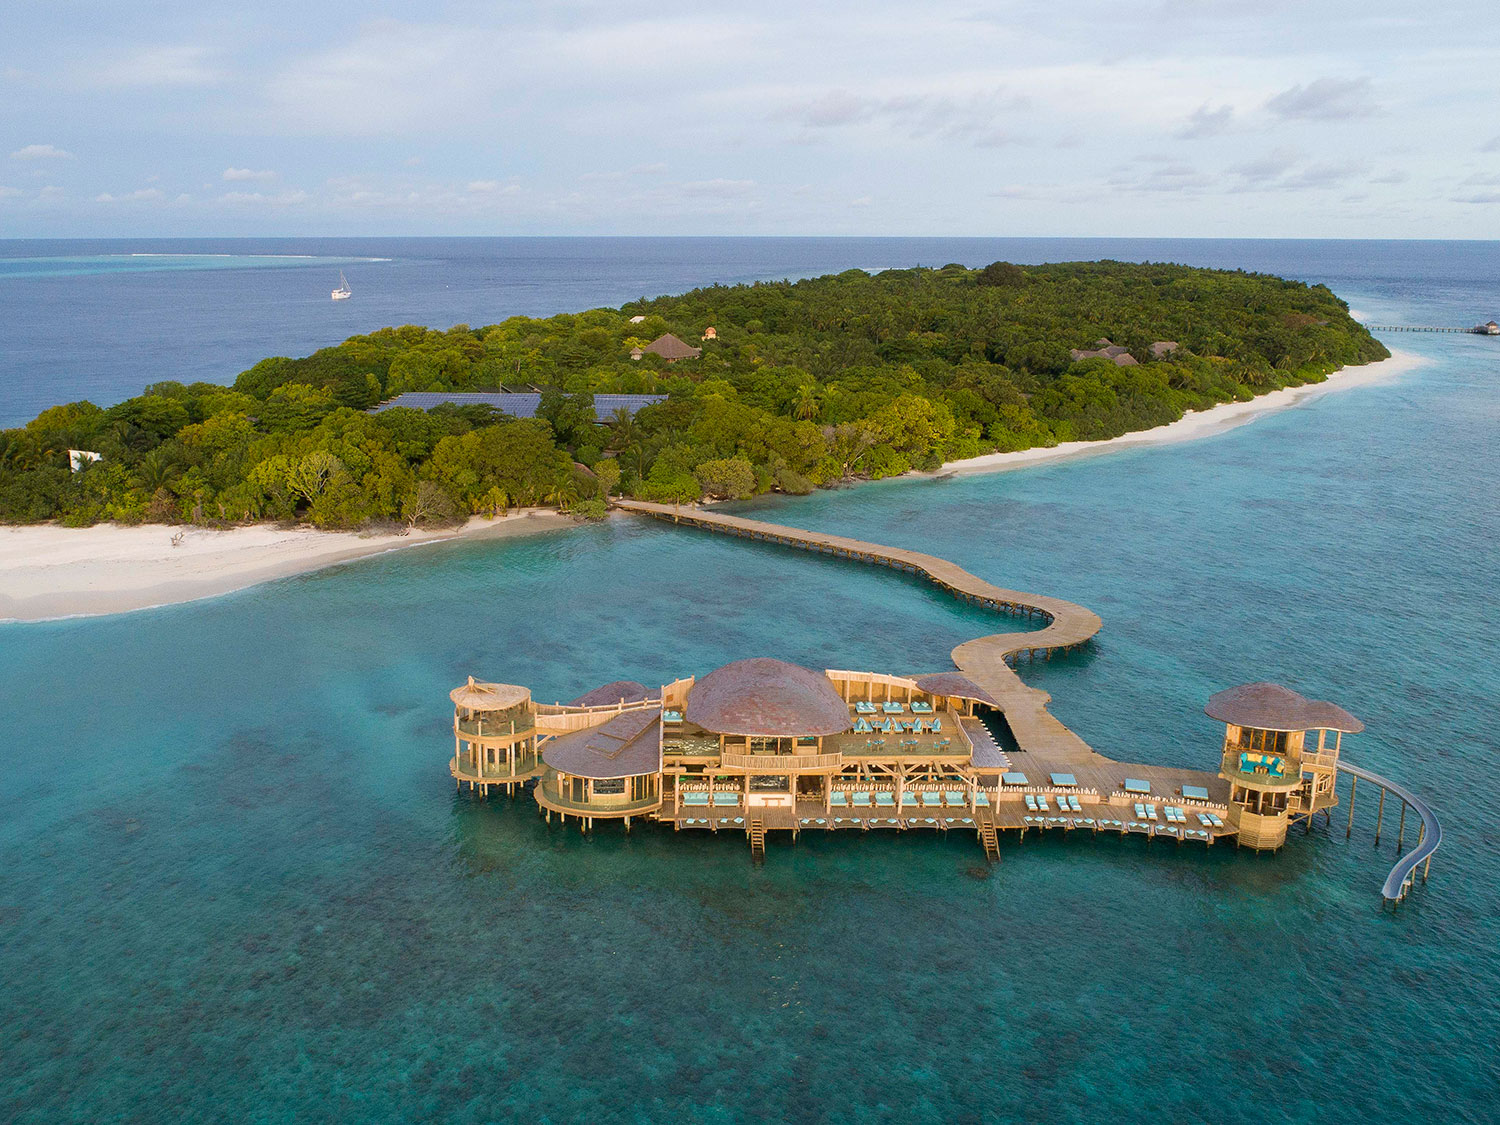 A lush green island surrounded by the ocean. An island pier resort branches off the island.